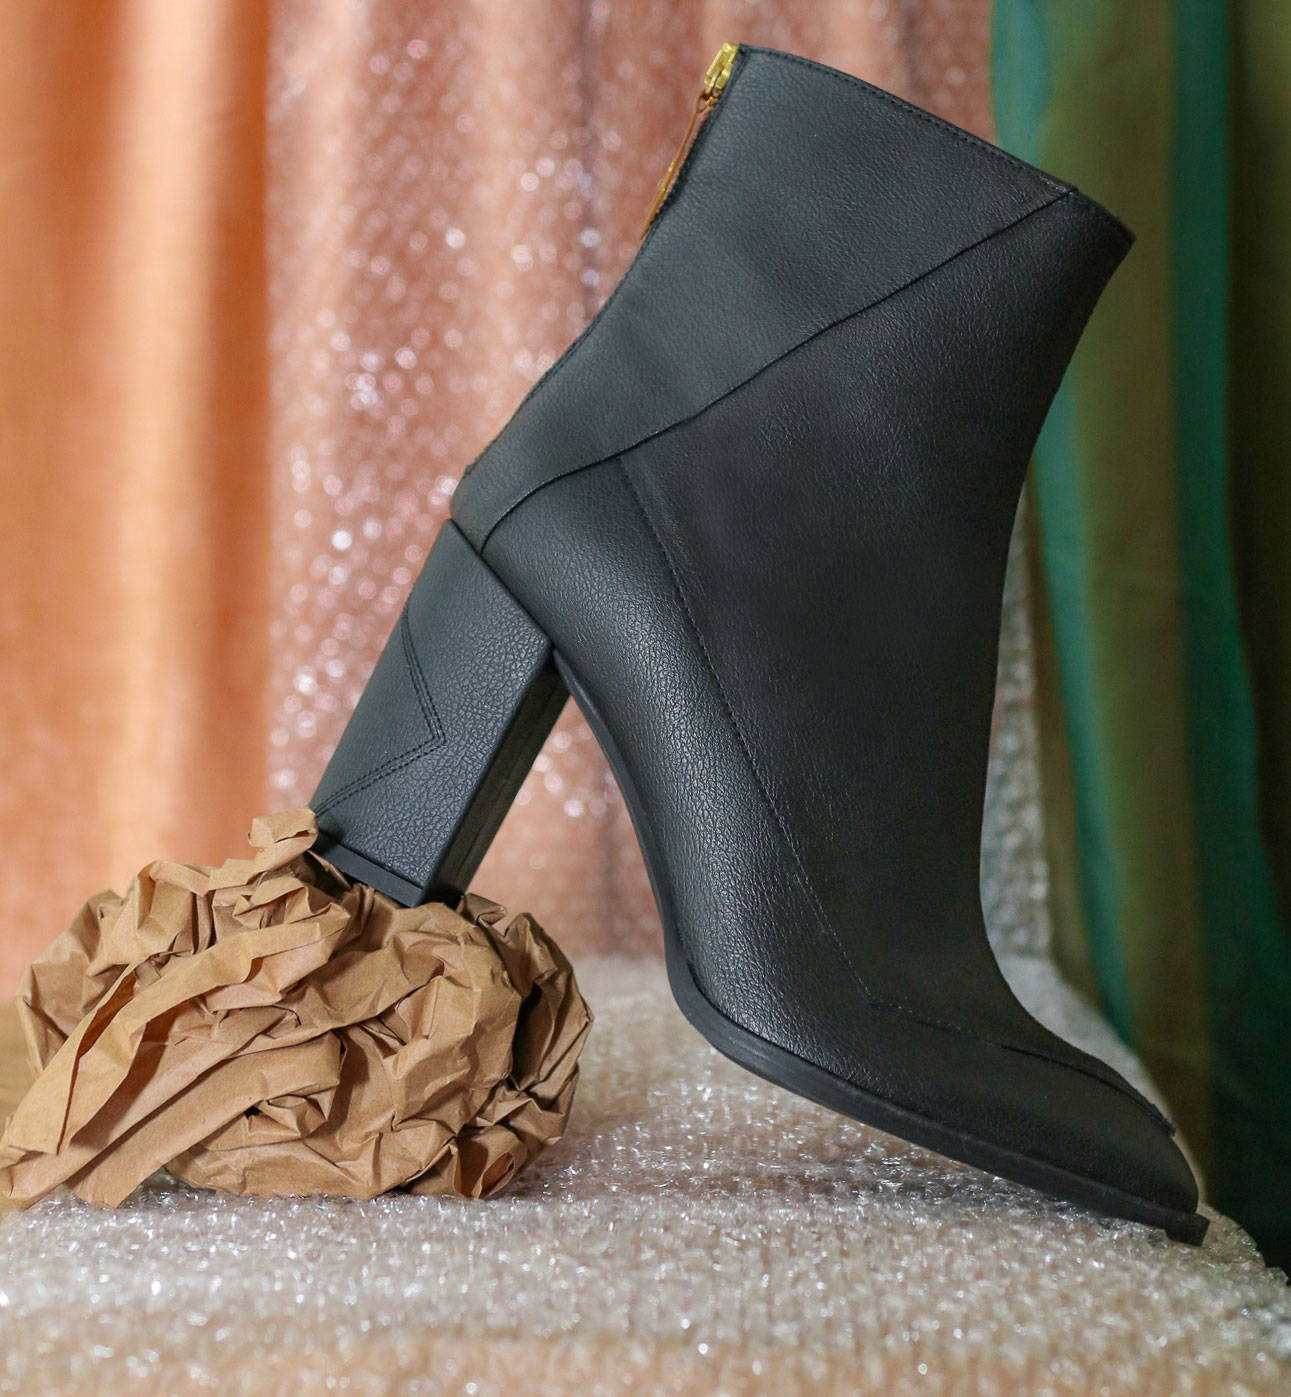 Sustainable vegan apple leather Almasi boot leaning on a piece of recycled paper and in front of a recycled backdrop